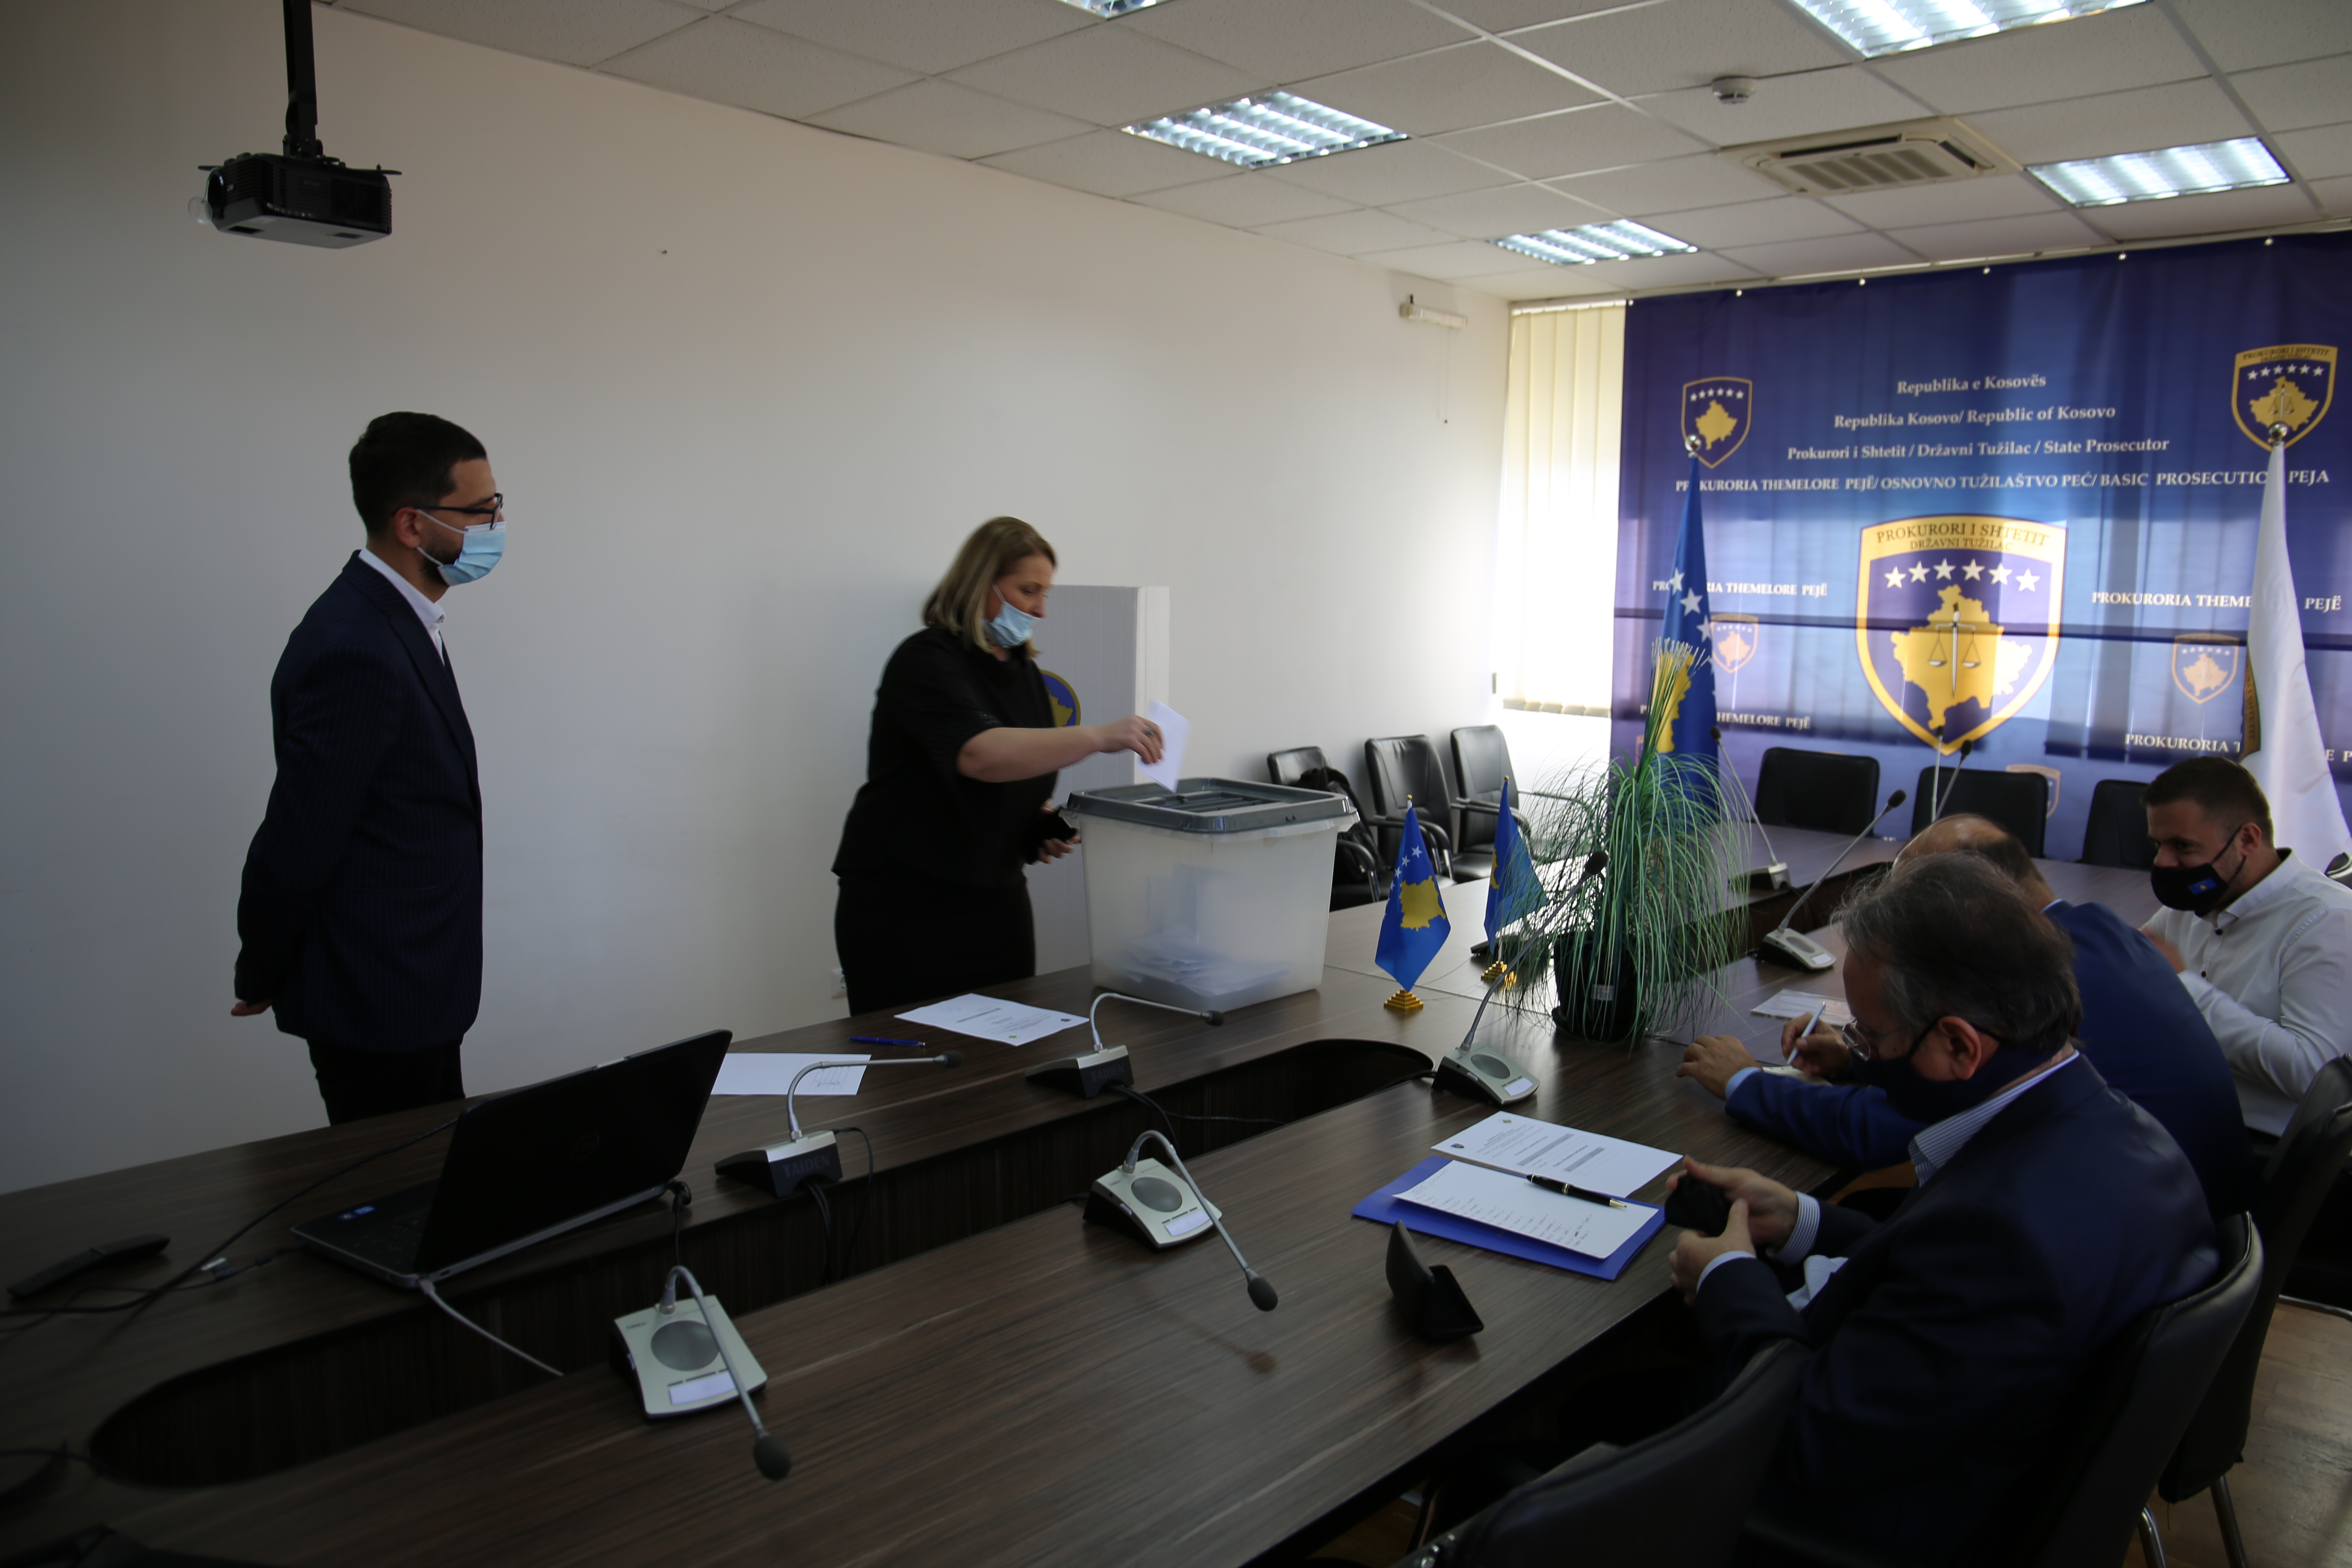 Voting process for the election of KPC members from the ranks of the Basic Prosecution of Mitrovica and Peja takes place